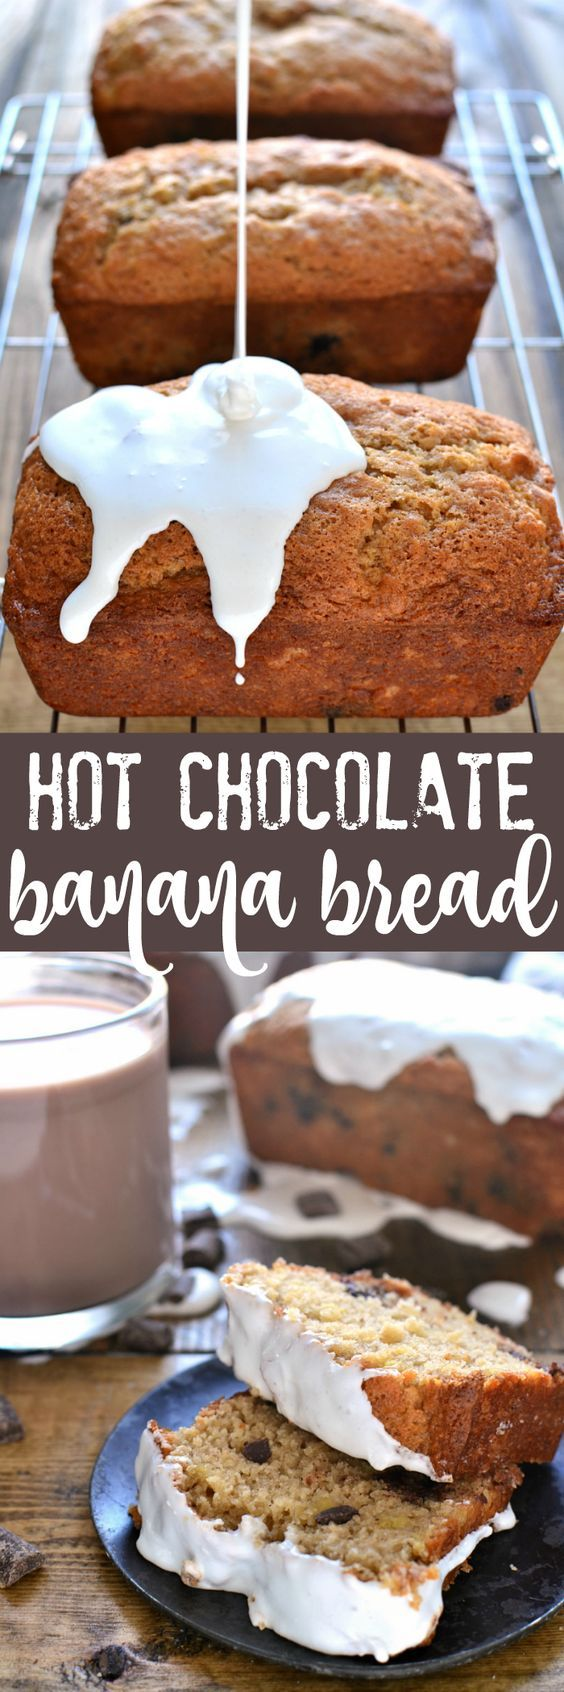 Hot Chocolate Banana Bread with Marshmallow Drizzle ...